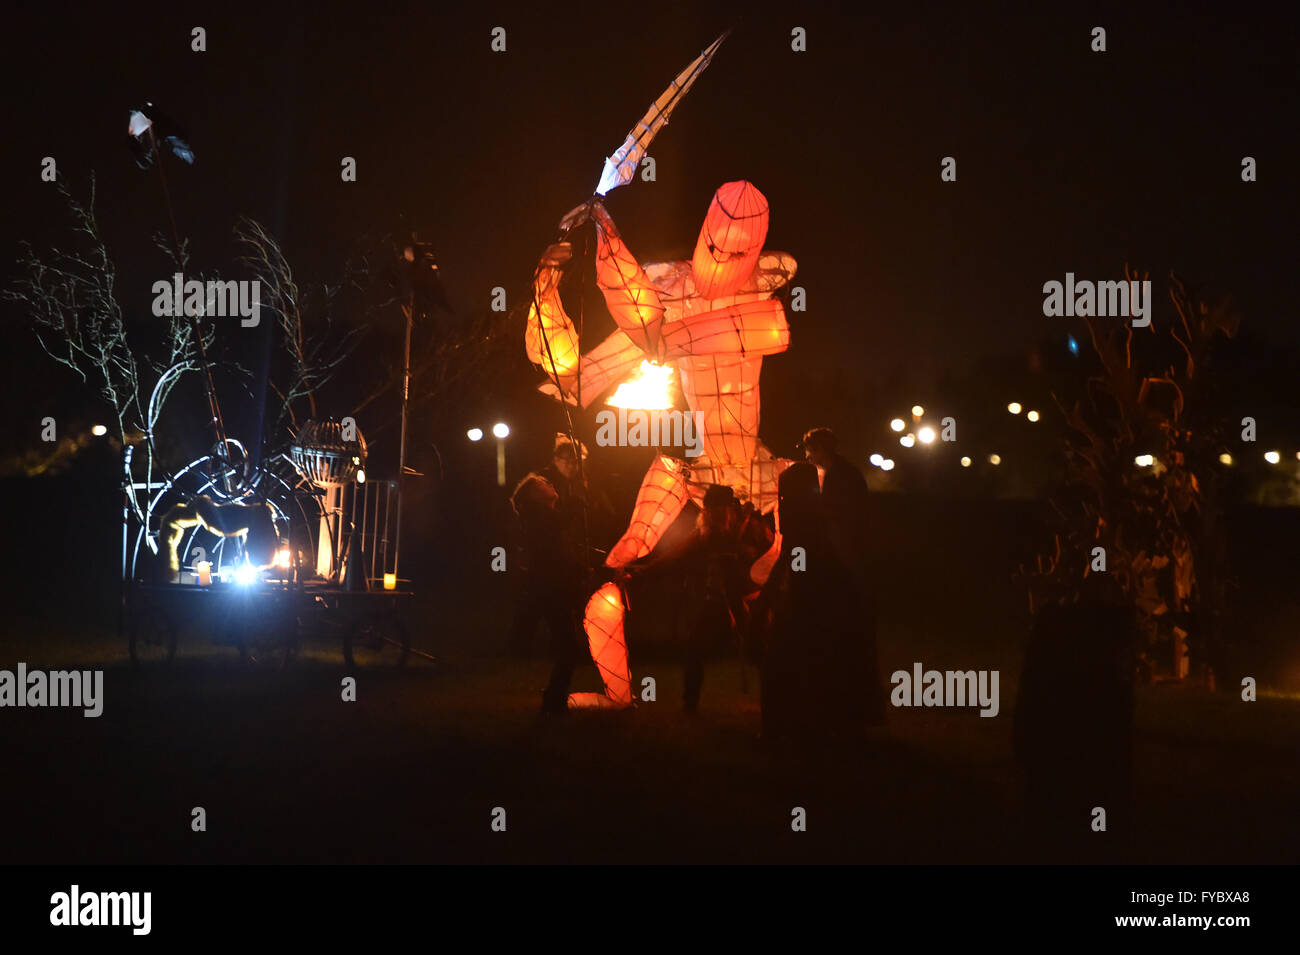 Fire Festival  Campbell Park Milton Keynes  Paraffinalia  Orange soldier marchs and attacks with sword - Stock Image